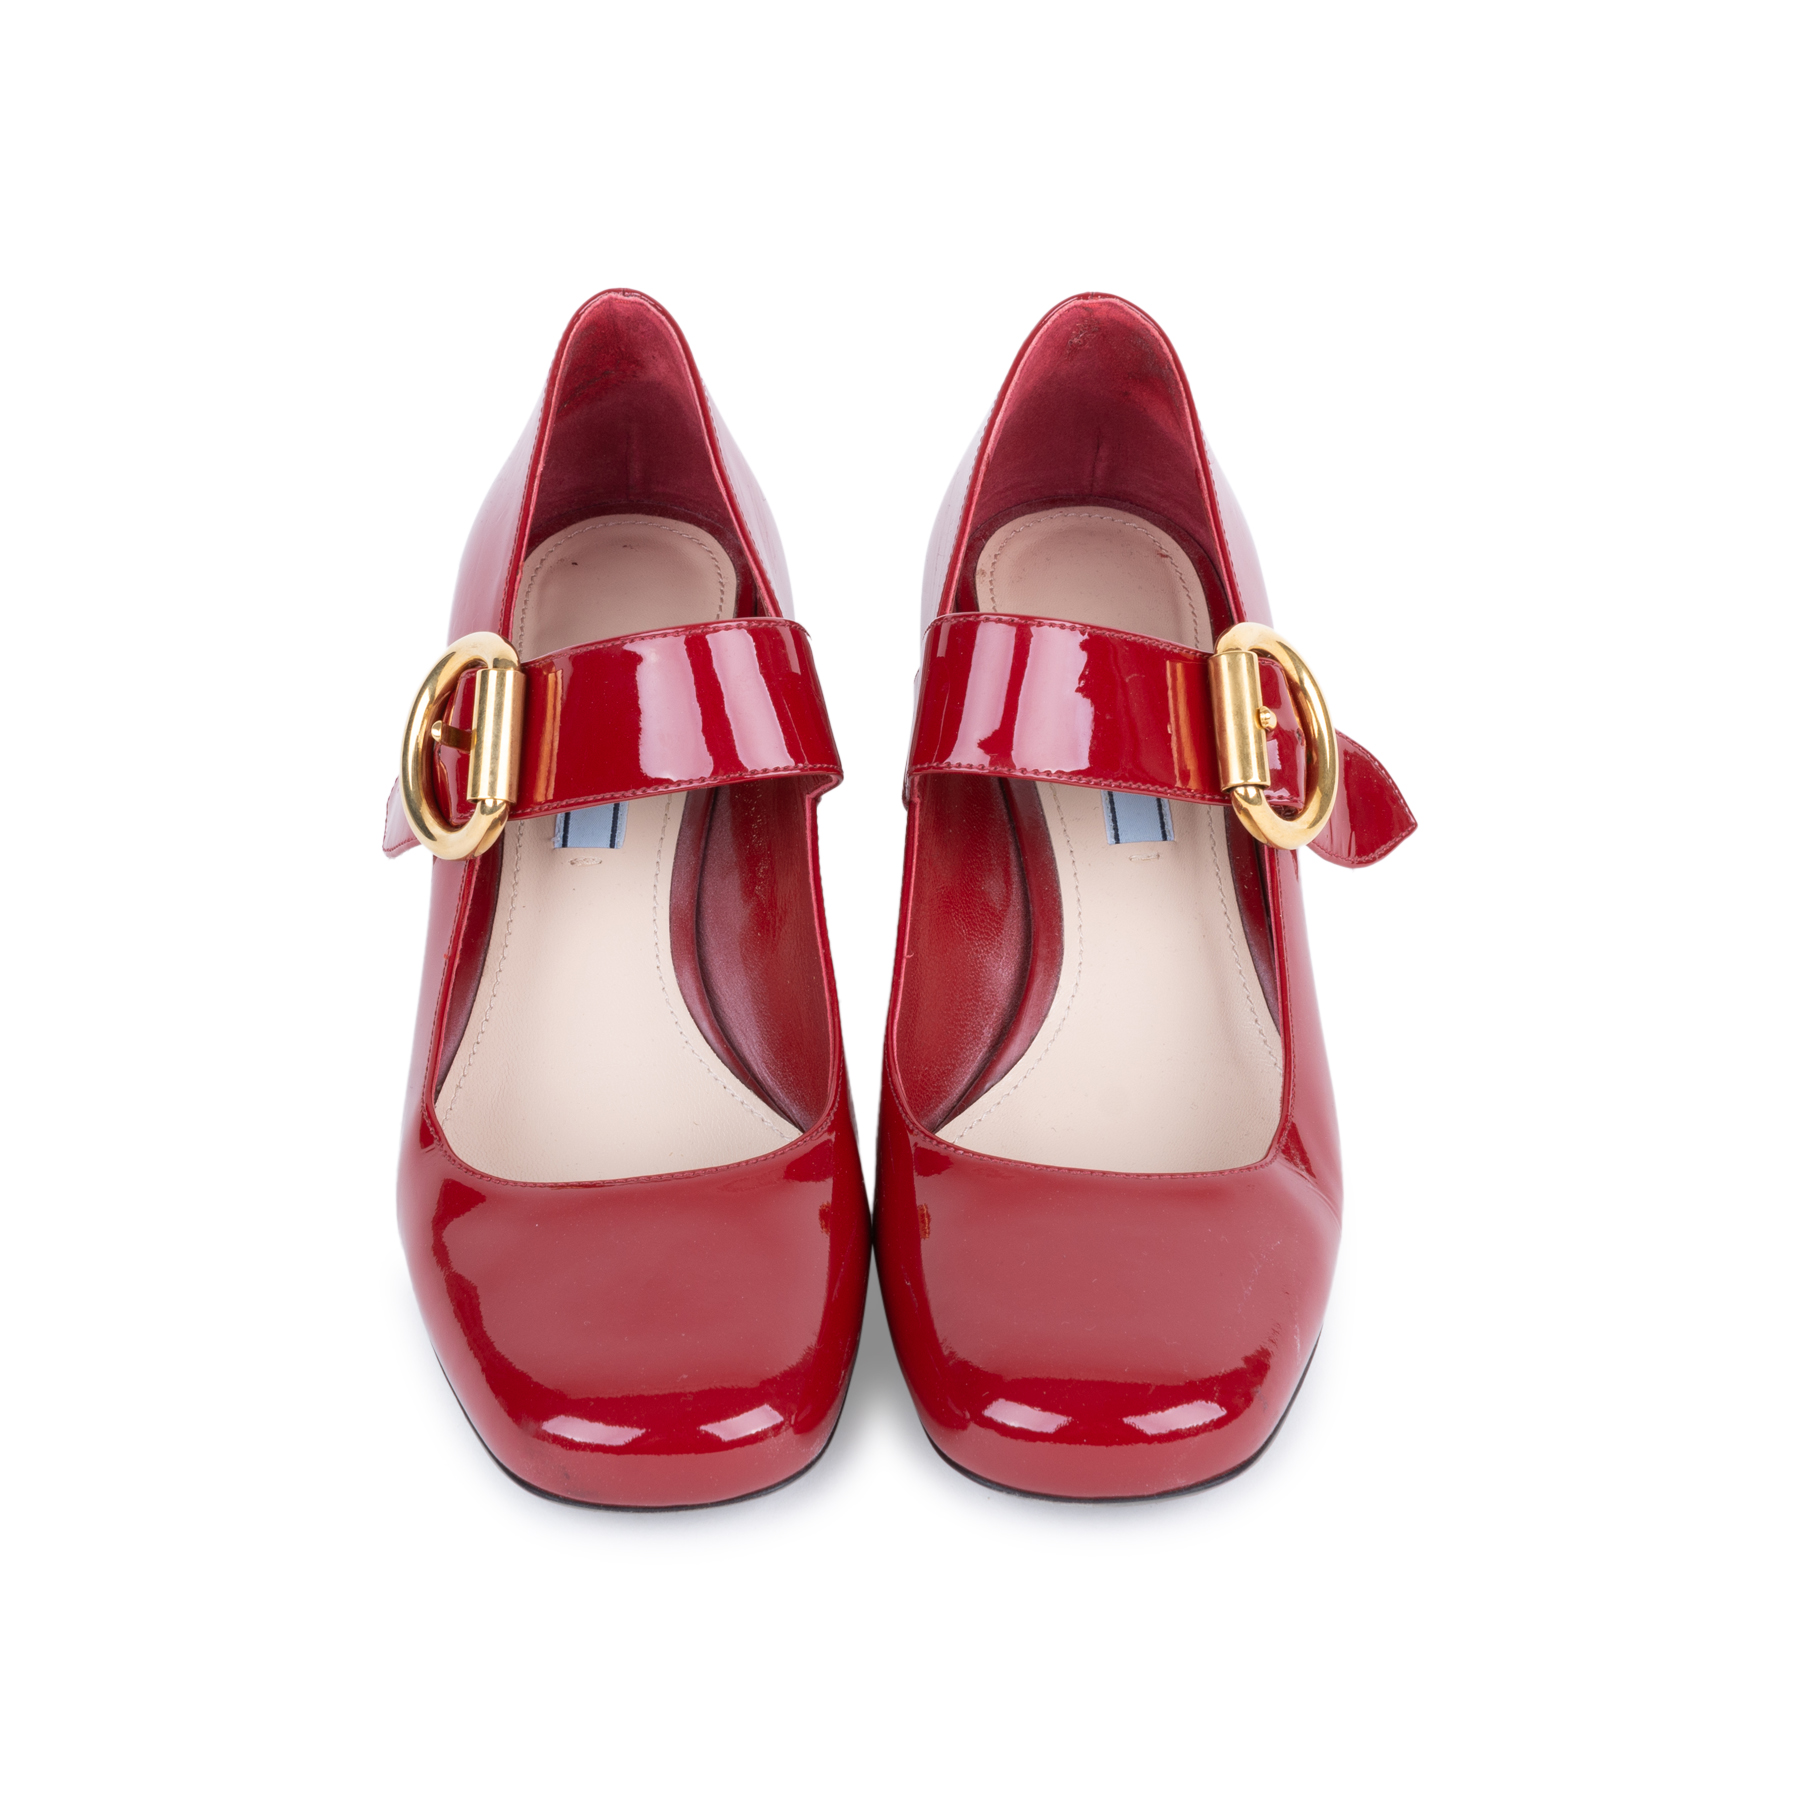 ddbb556e03f Authentic Second Hand Prada Patent Mary-Jane Pumps (PSS-377-00060 ...